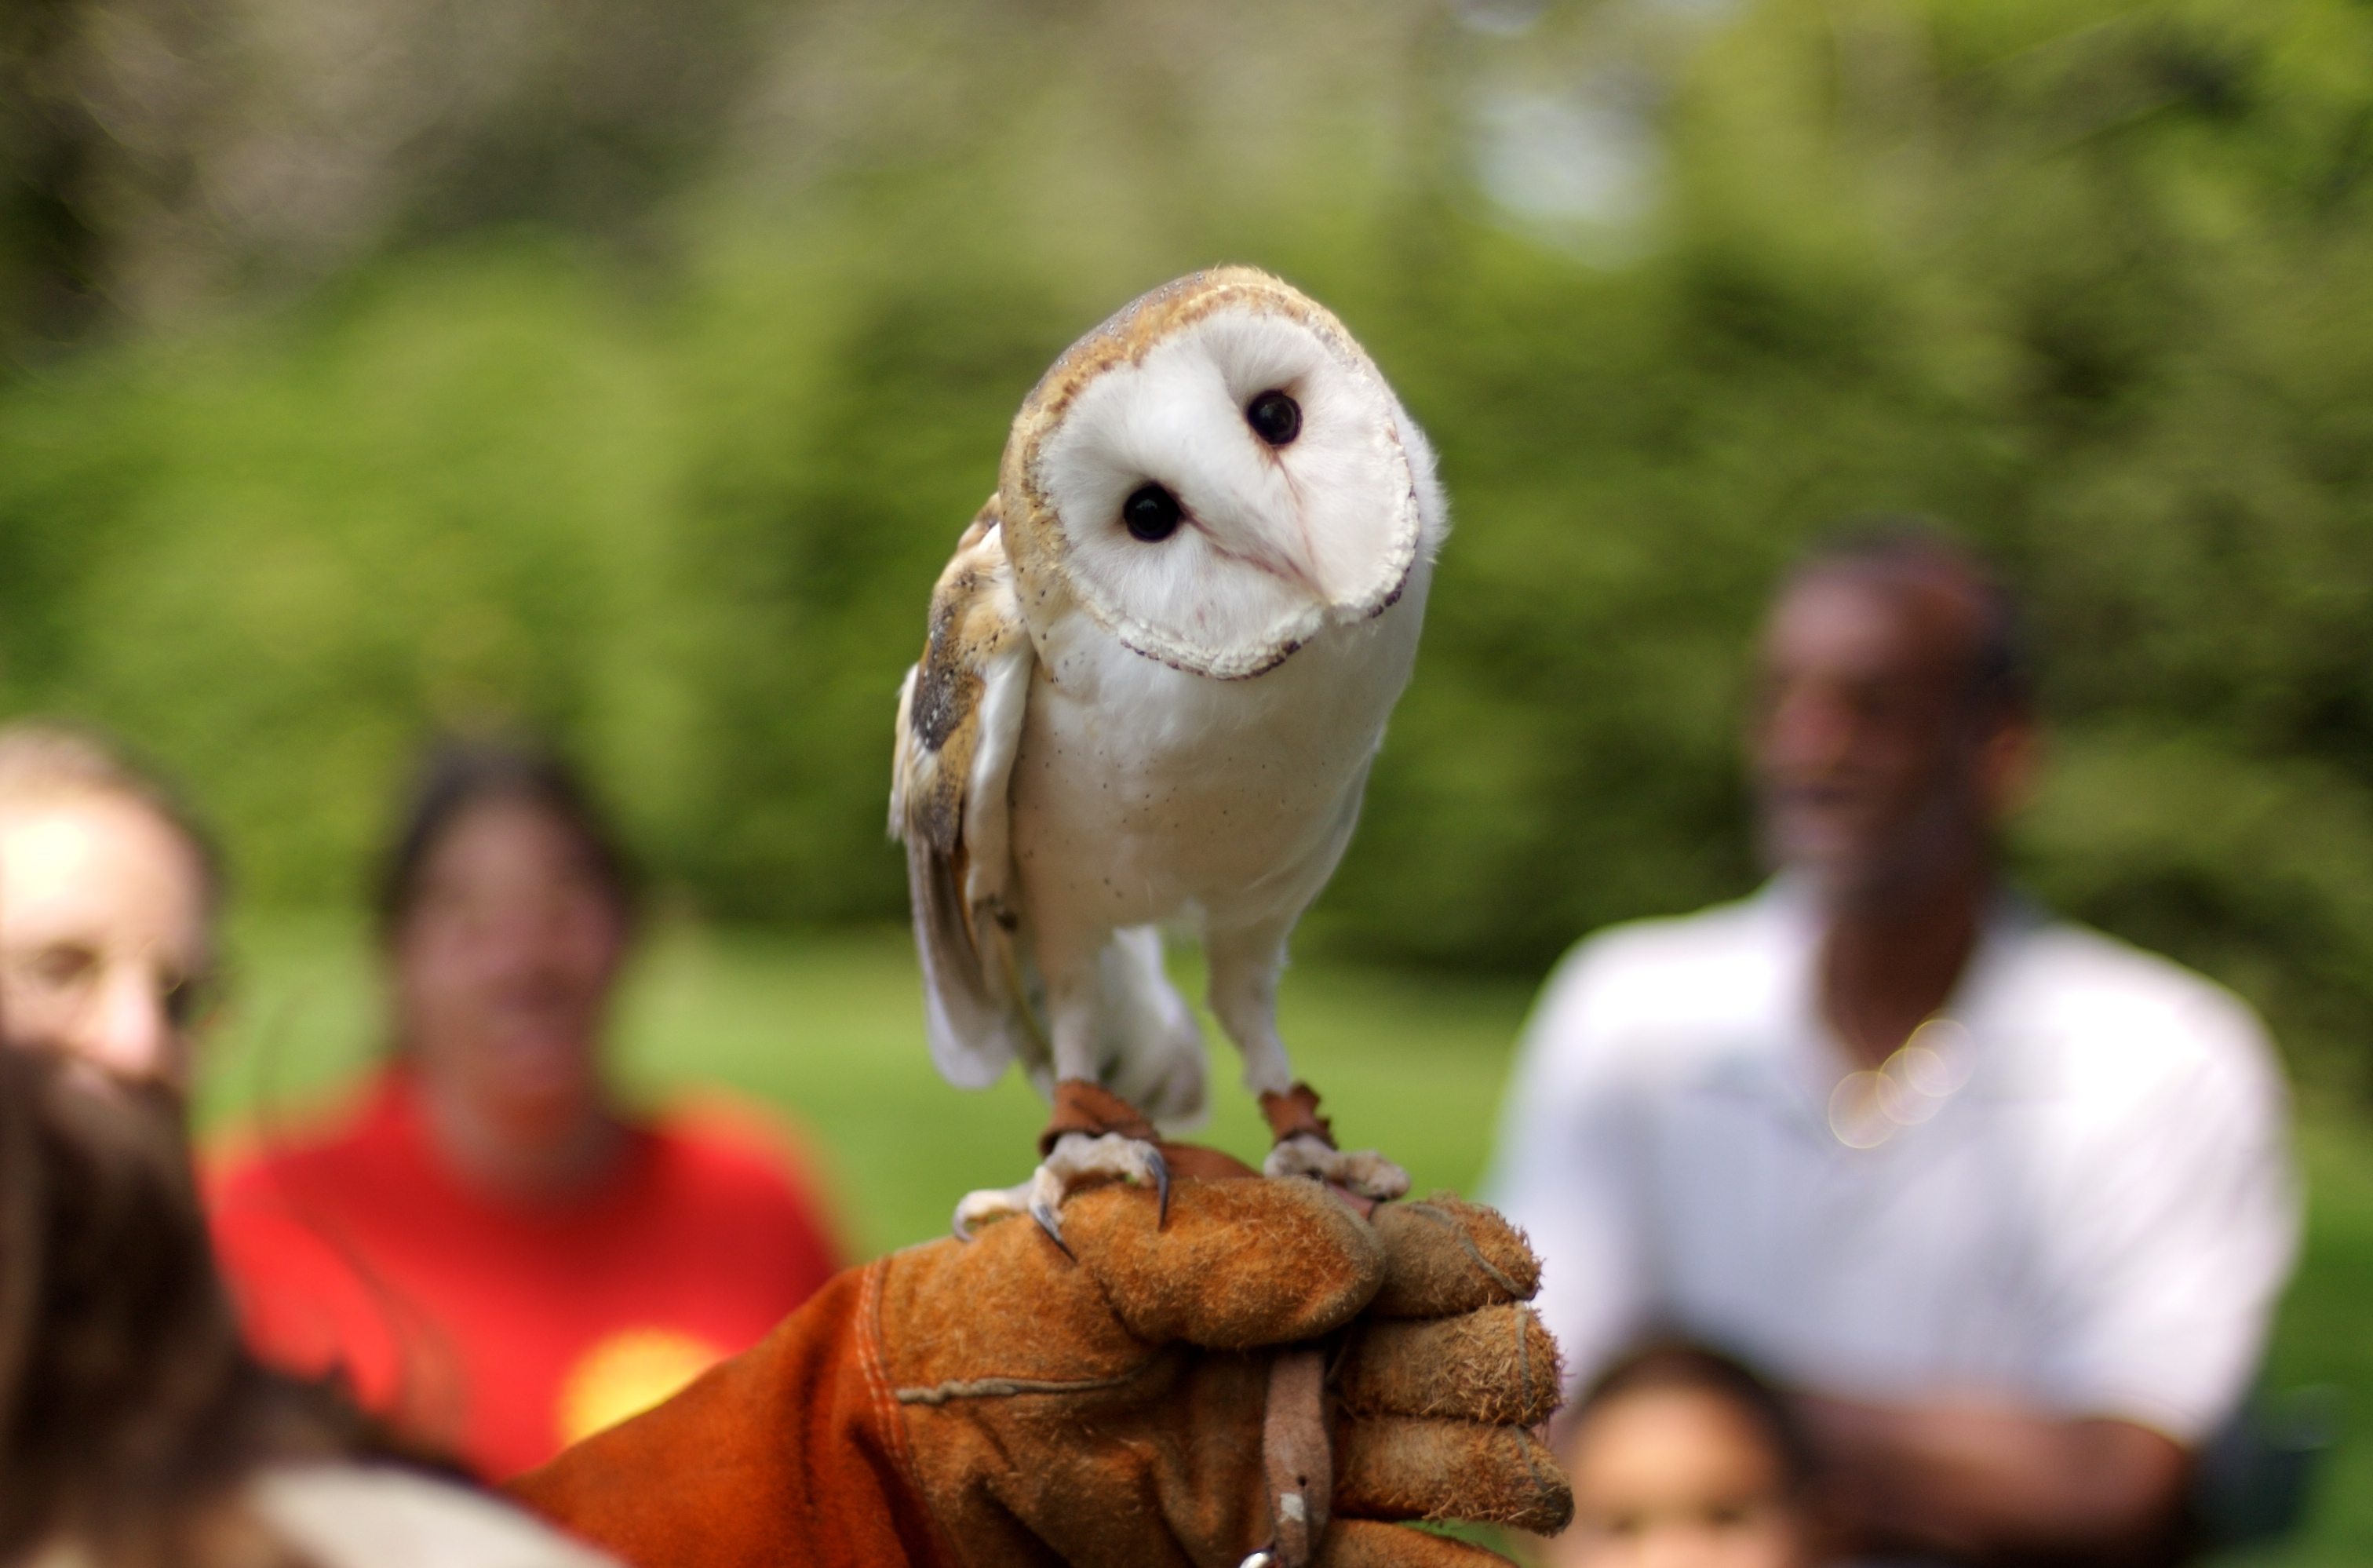 By Jeff Kubina (originally posted to Flickr as Barn Owl) [CC-BY-SA-2.0 (http://creativecommons.org/licenses/by-sa/2.0)], via Wikimedia Commons